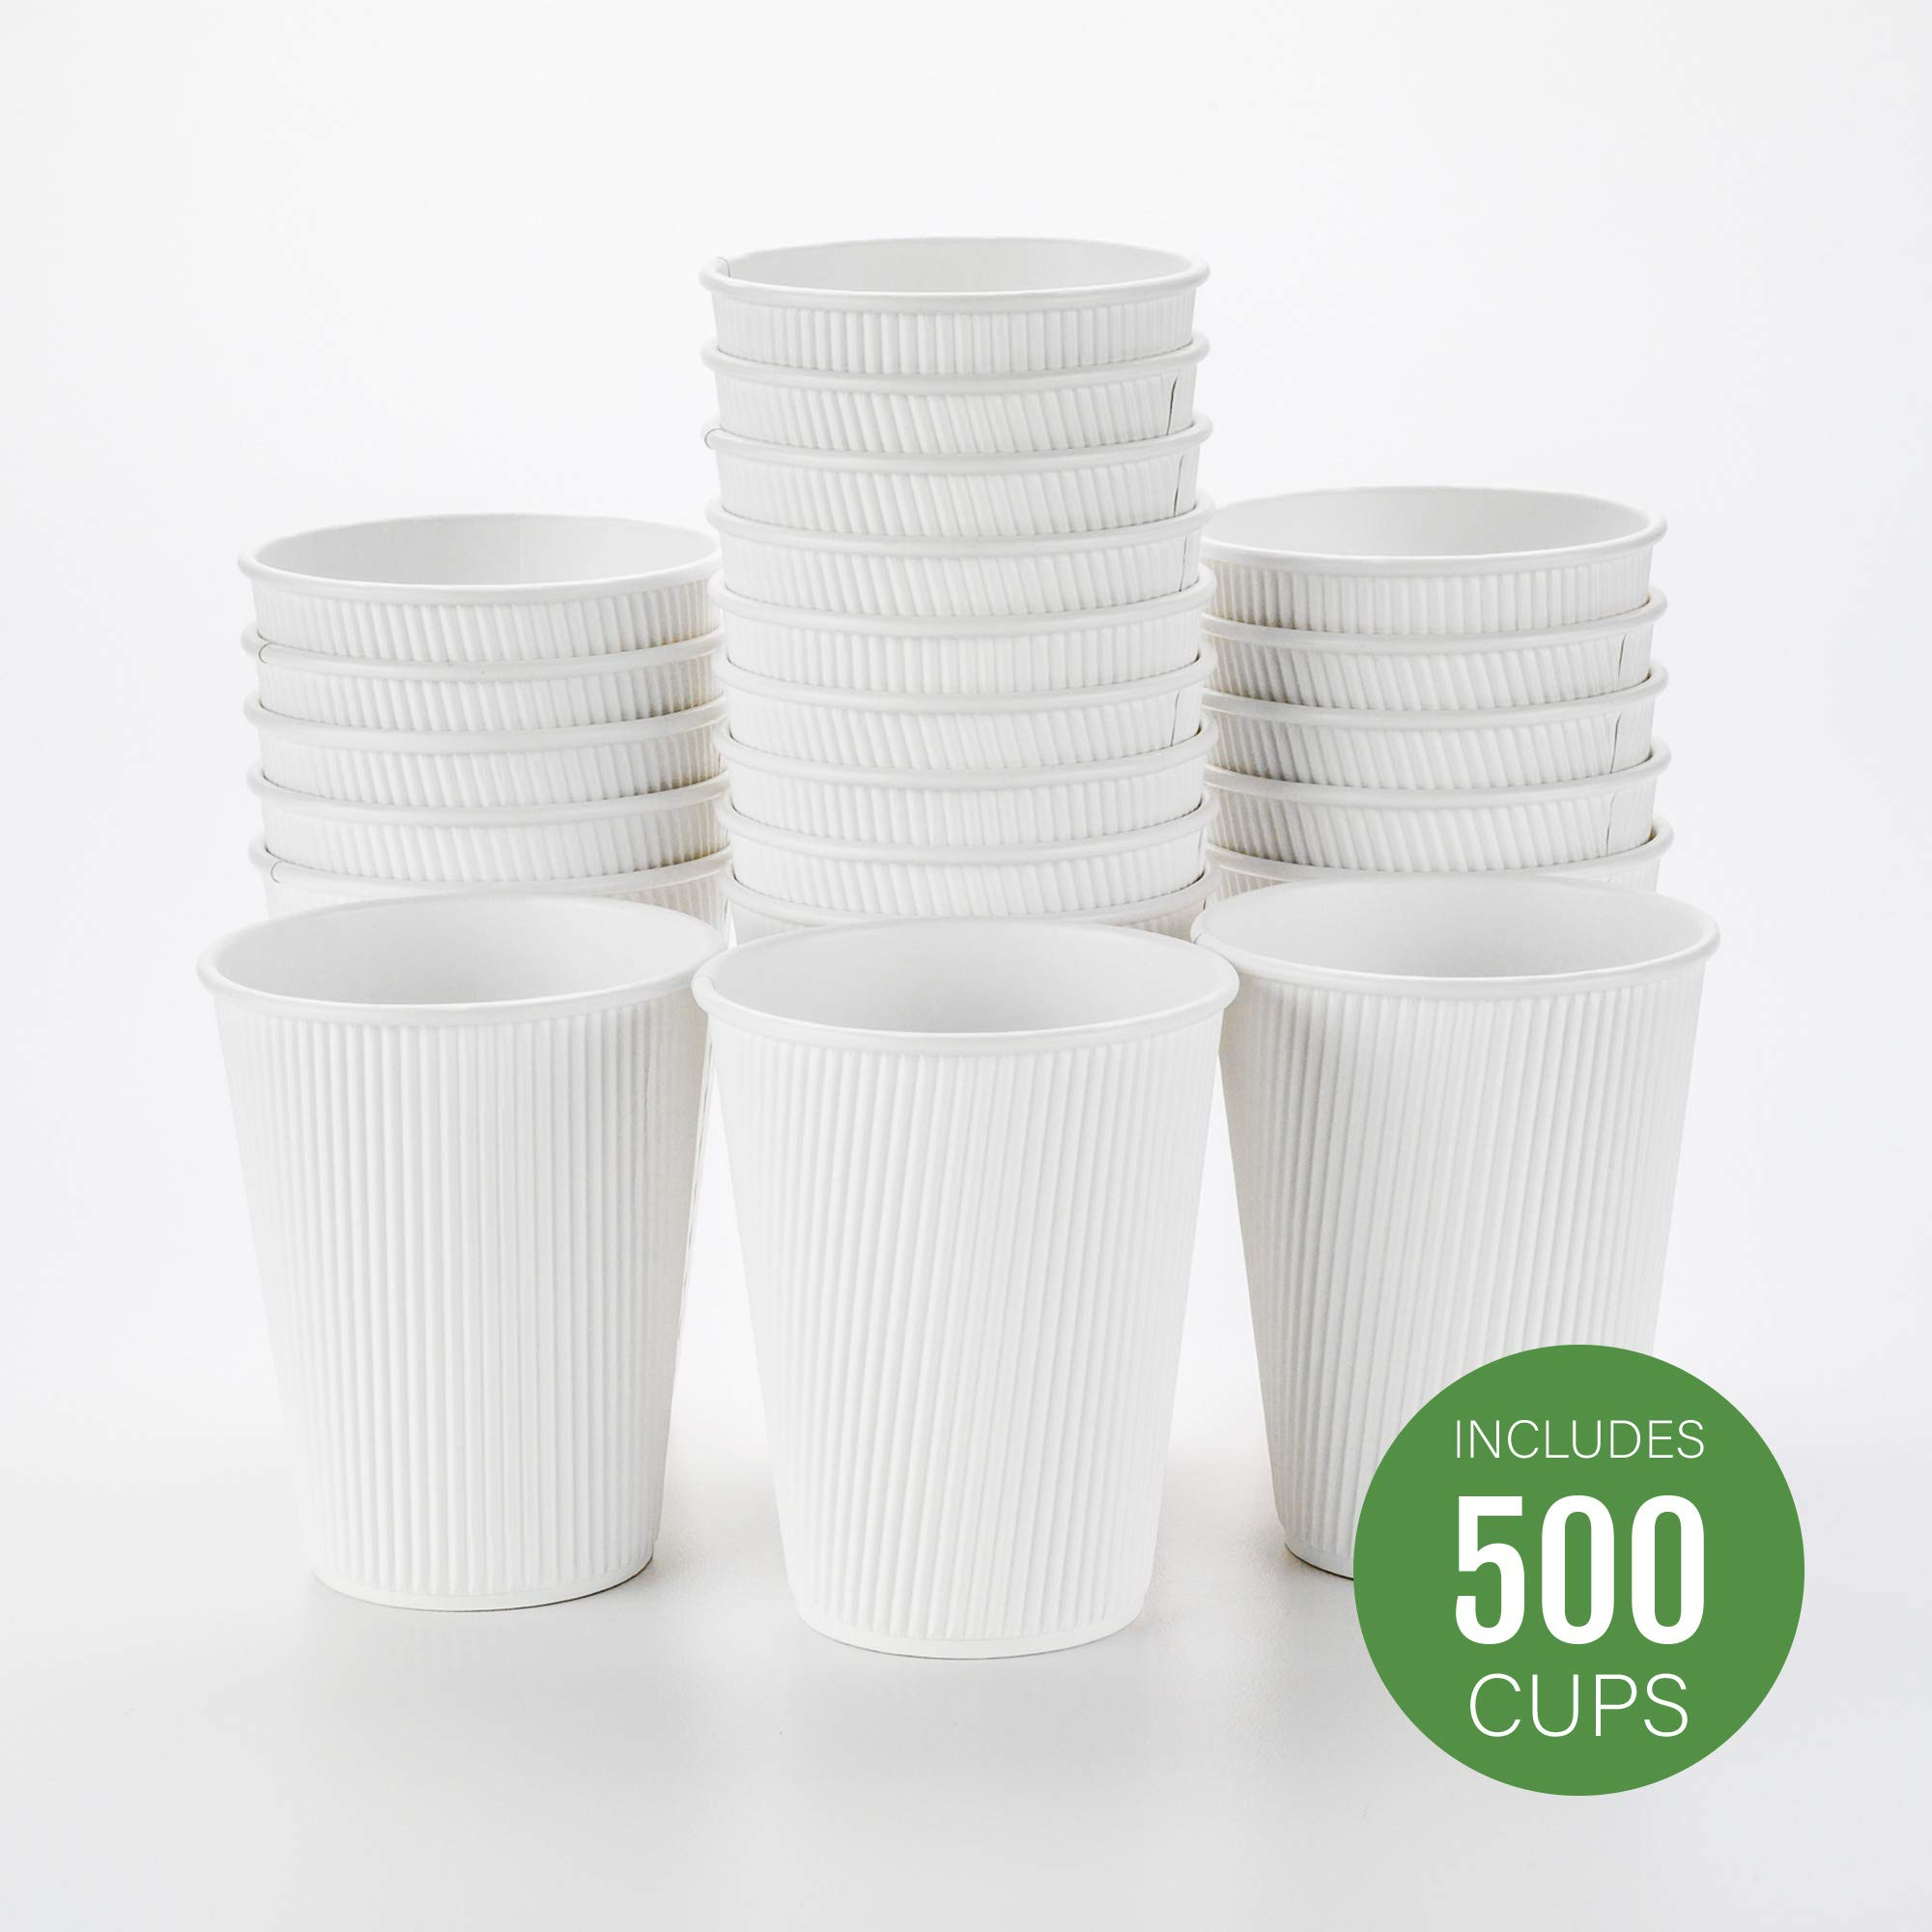 500-CT Disposable White 12-OZ Hot Beverage Cups with Ripple Wall Design: No Need for Sleeves - Perfect for Cafes - Eco-Friendly Recyclable Paper - Insulated - Wholesale Takeout Coffee Cup